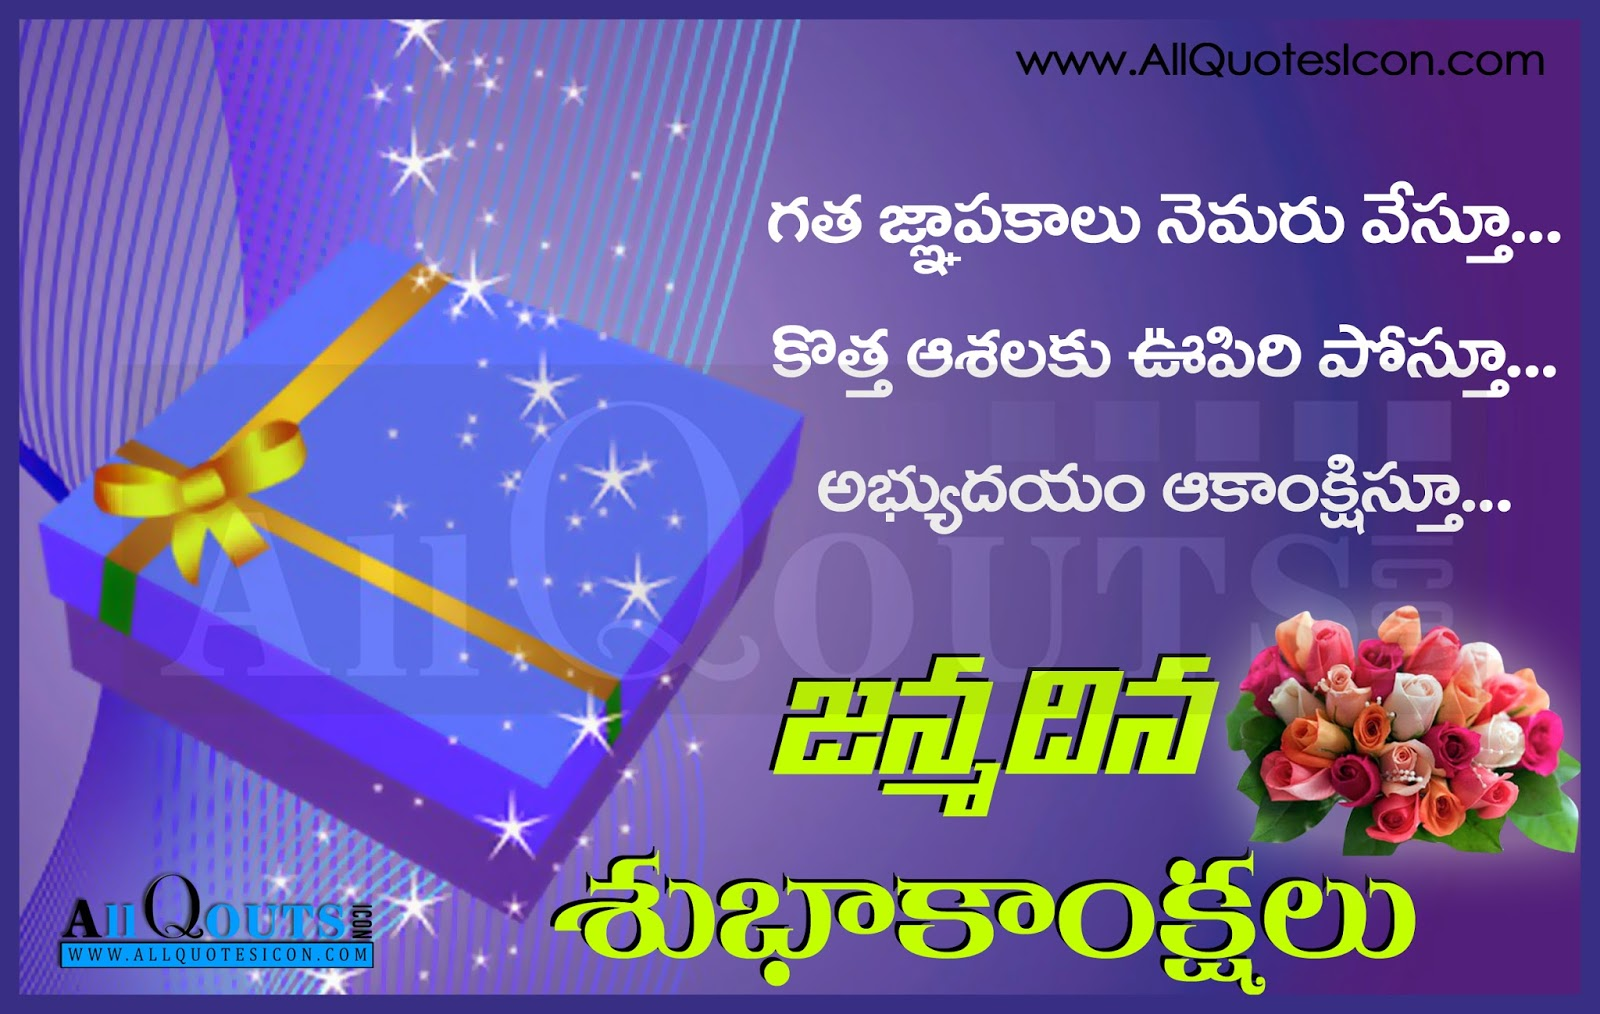 Happy birthday telugu quotes hd wallpapers best birthday greetings happy birthday telugu quotes images pictures wallpapers photos m4hsunfo